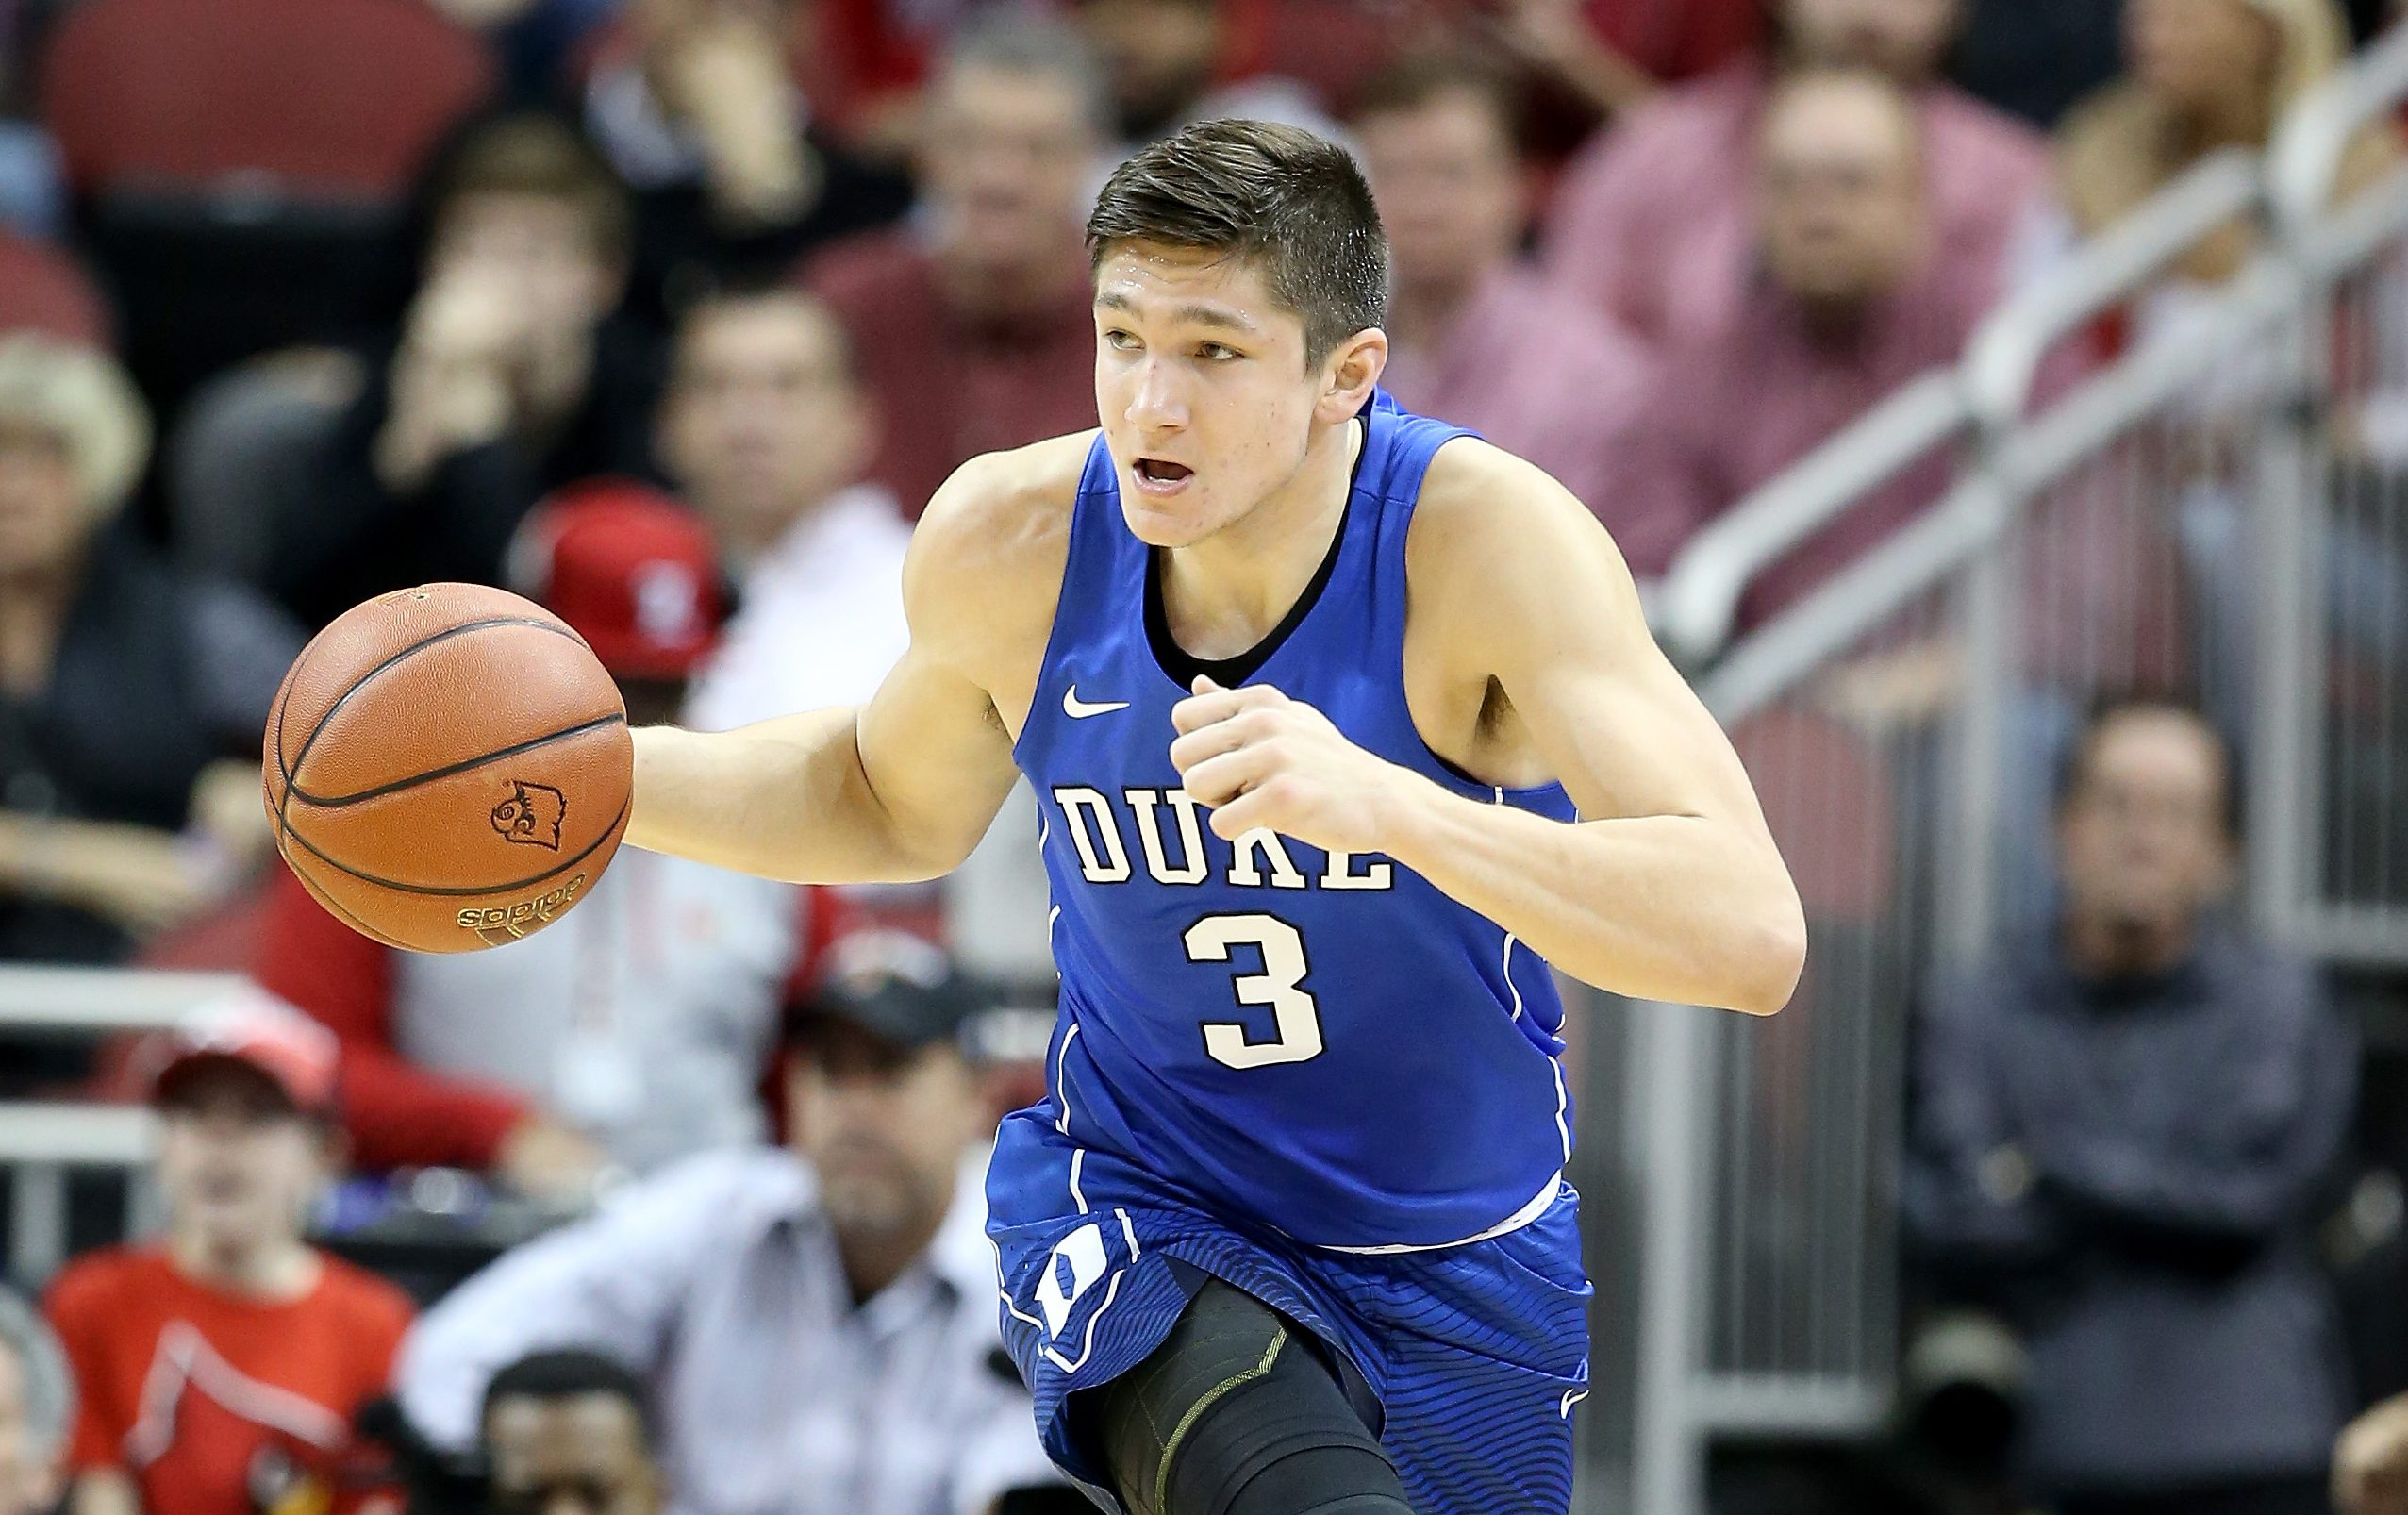 LOUISVILLE, KY - FEBRUARY 20: Grayson Allen #3 of the Duke Blue Devils dribbles the ball during the game against the Louisville Cardinals at KFC YUM! Center on February 20, 2016 in Louisville, Kentucky. (Photo by Andy Lyons/Getty Images)